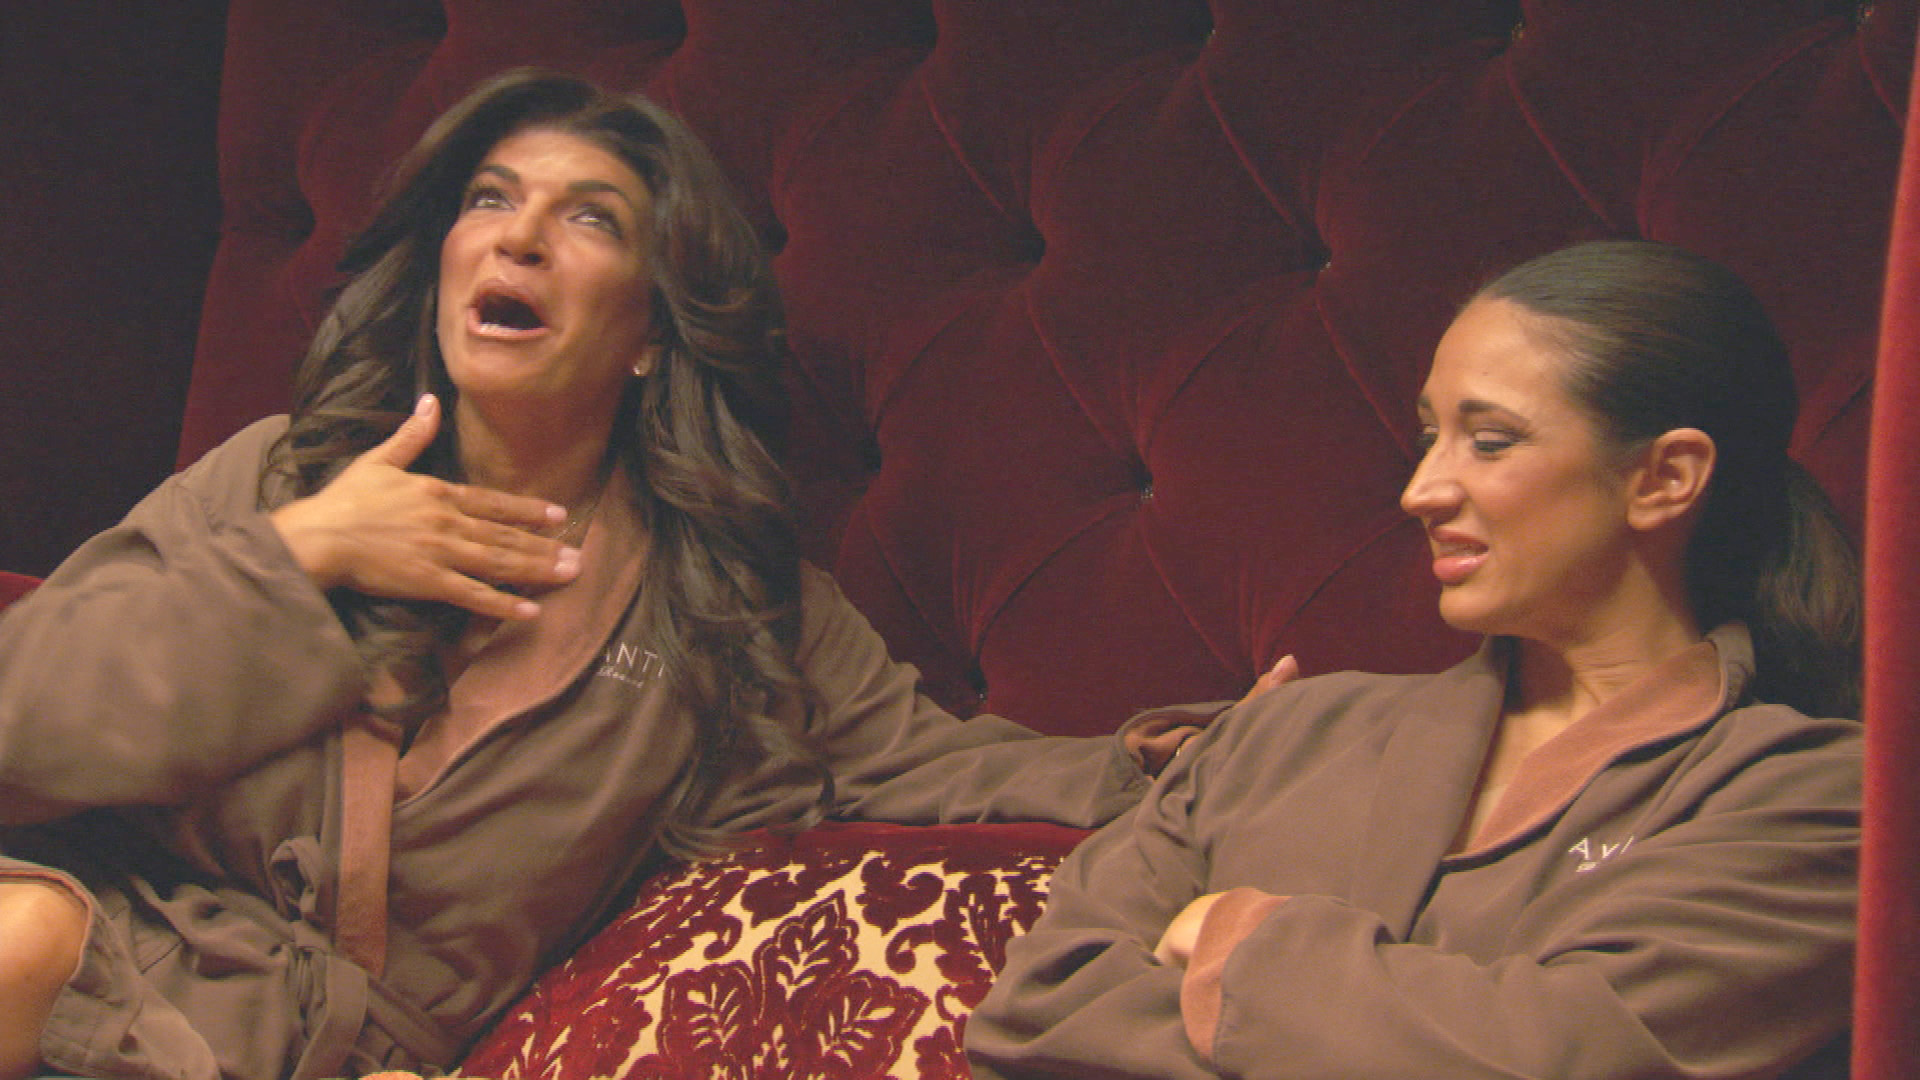 RHONJ Ep 13 Recap Part 3: Don't Talk About Spa Club